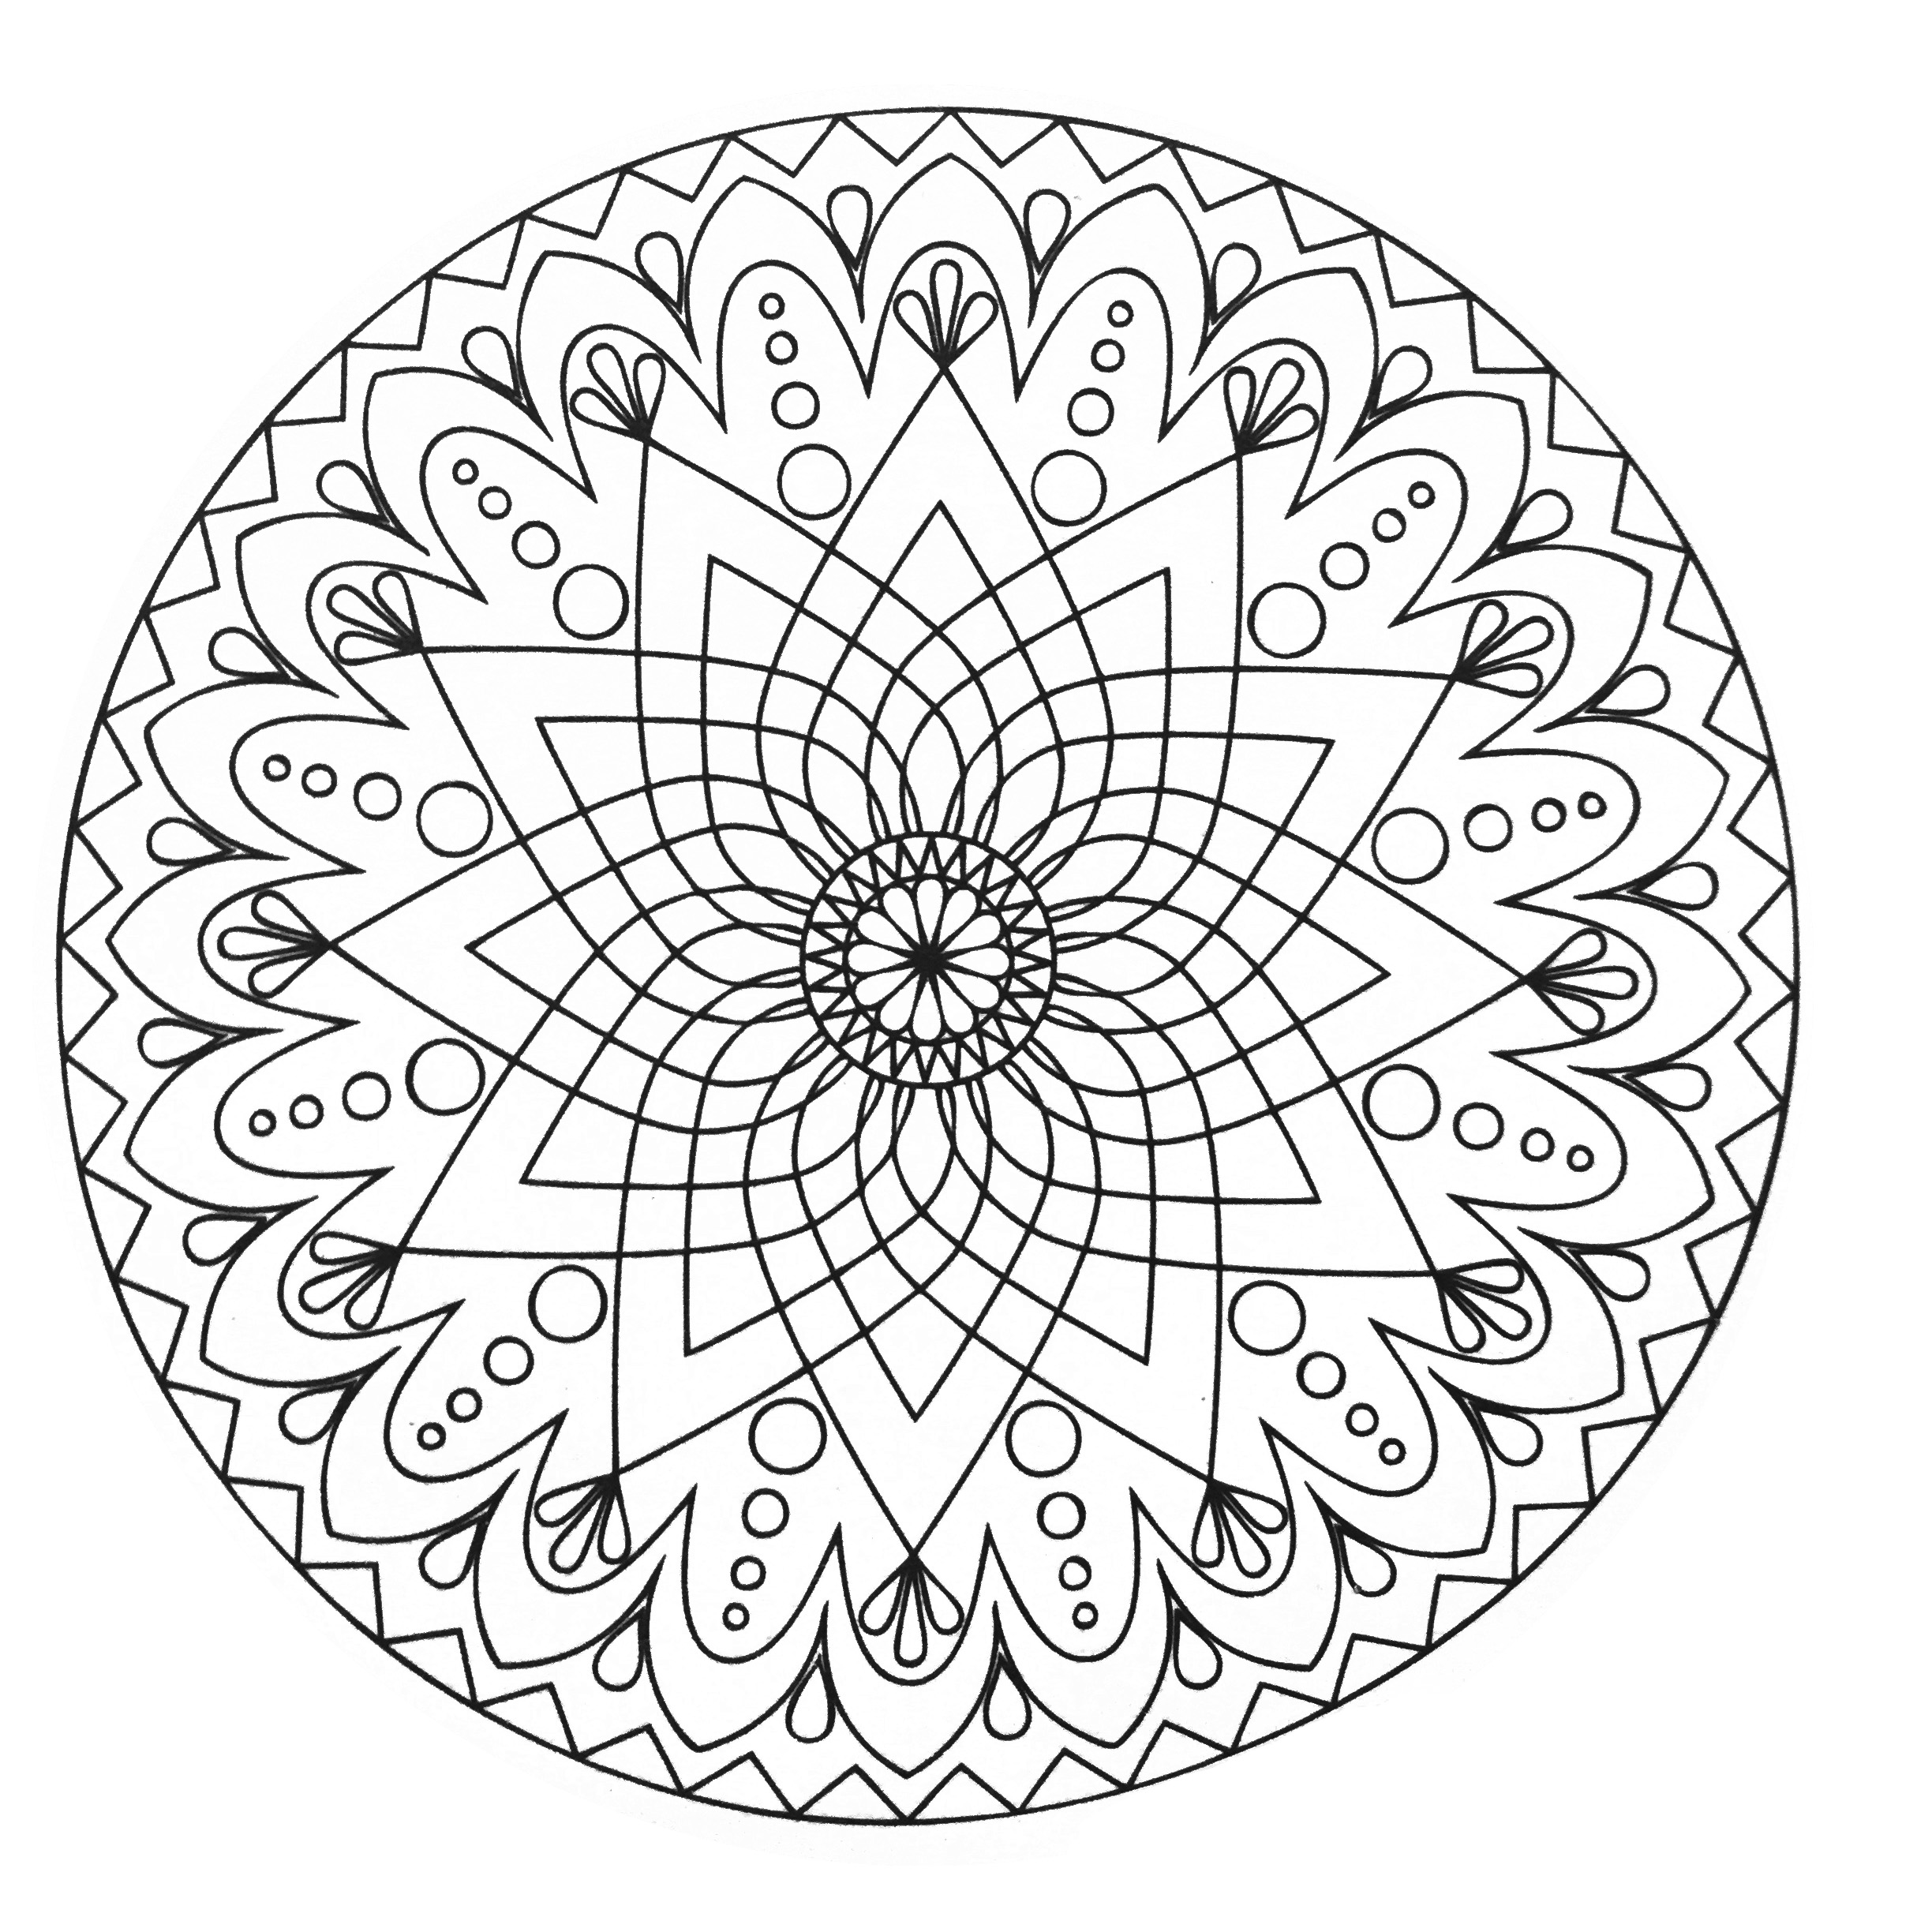 Mandalas coloring pages for adults coloring mandala for Simple mandala coloring page